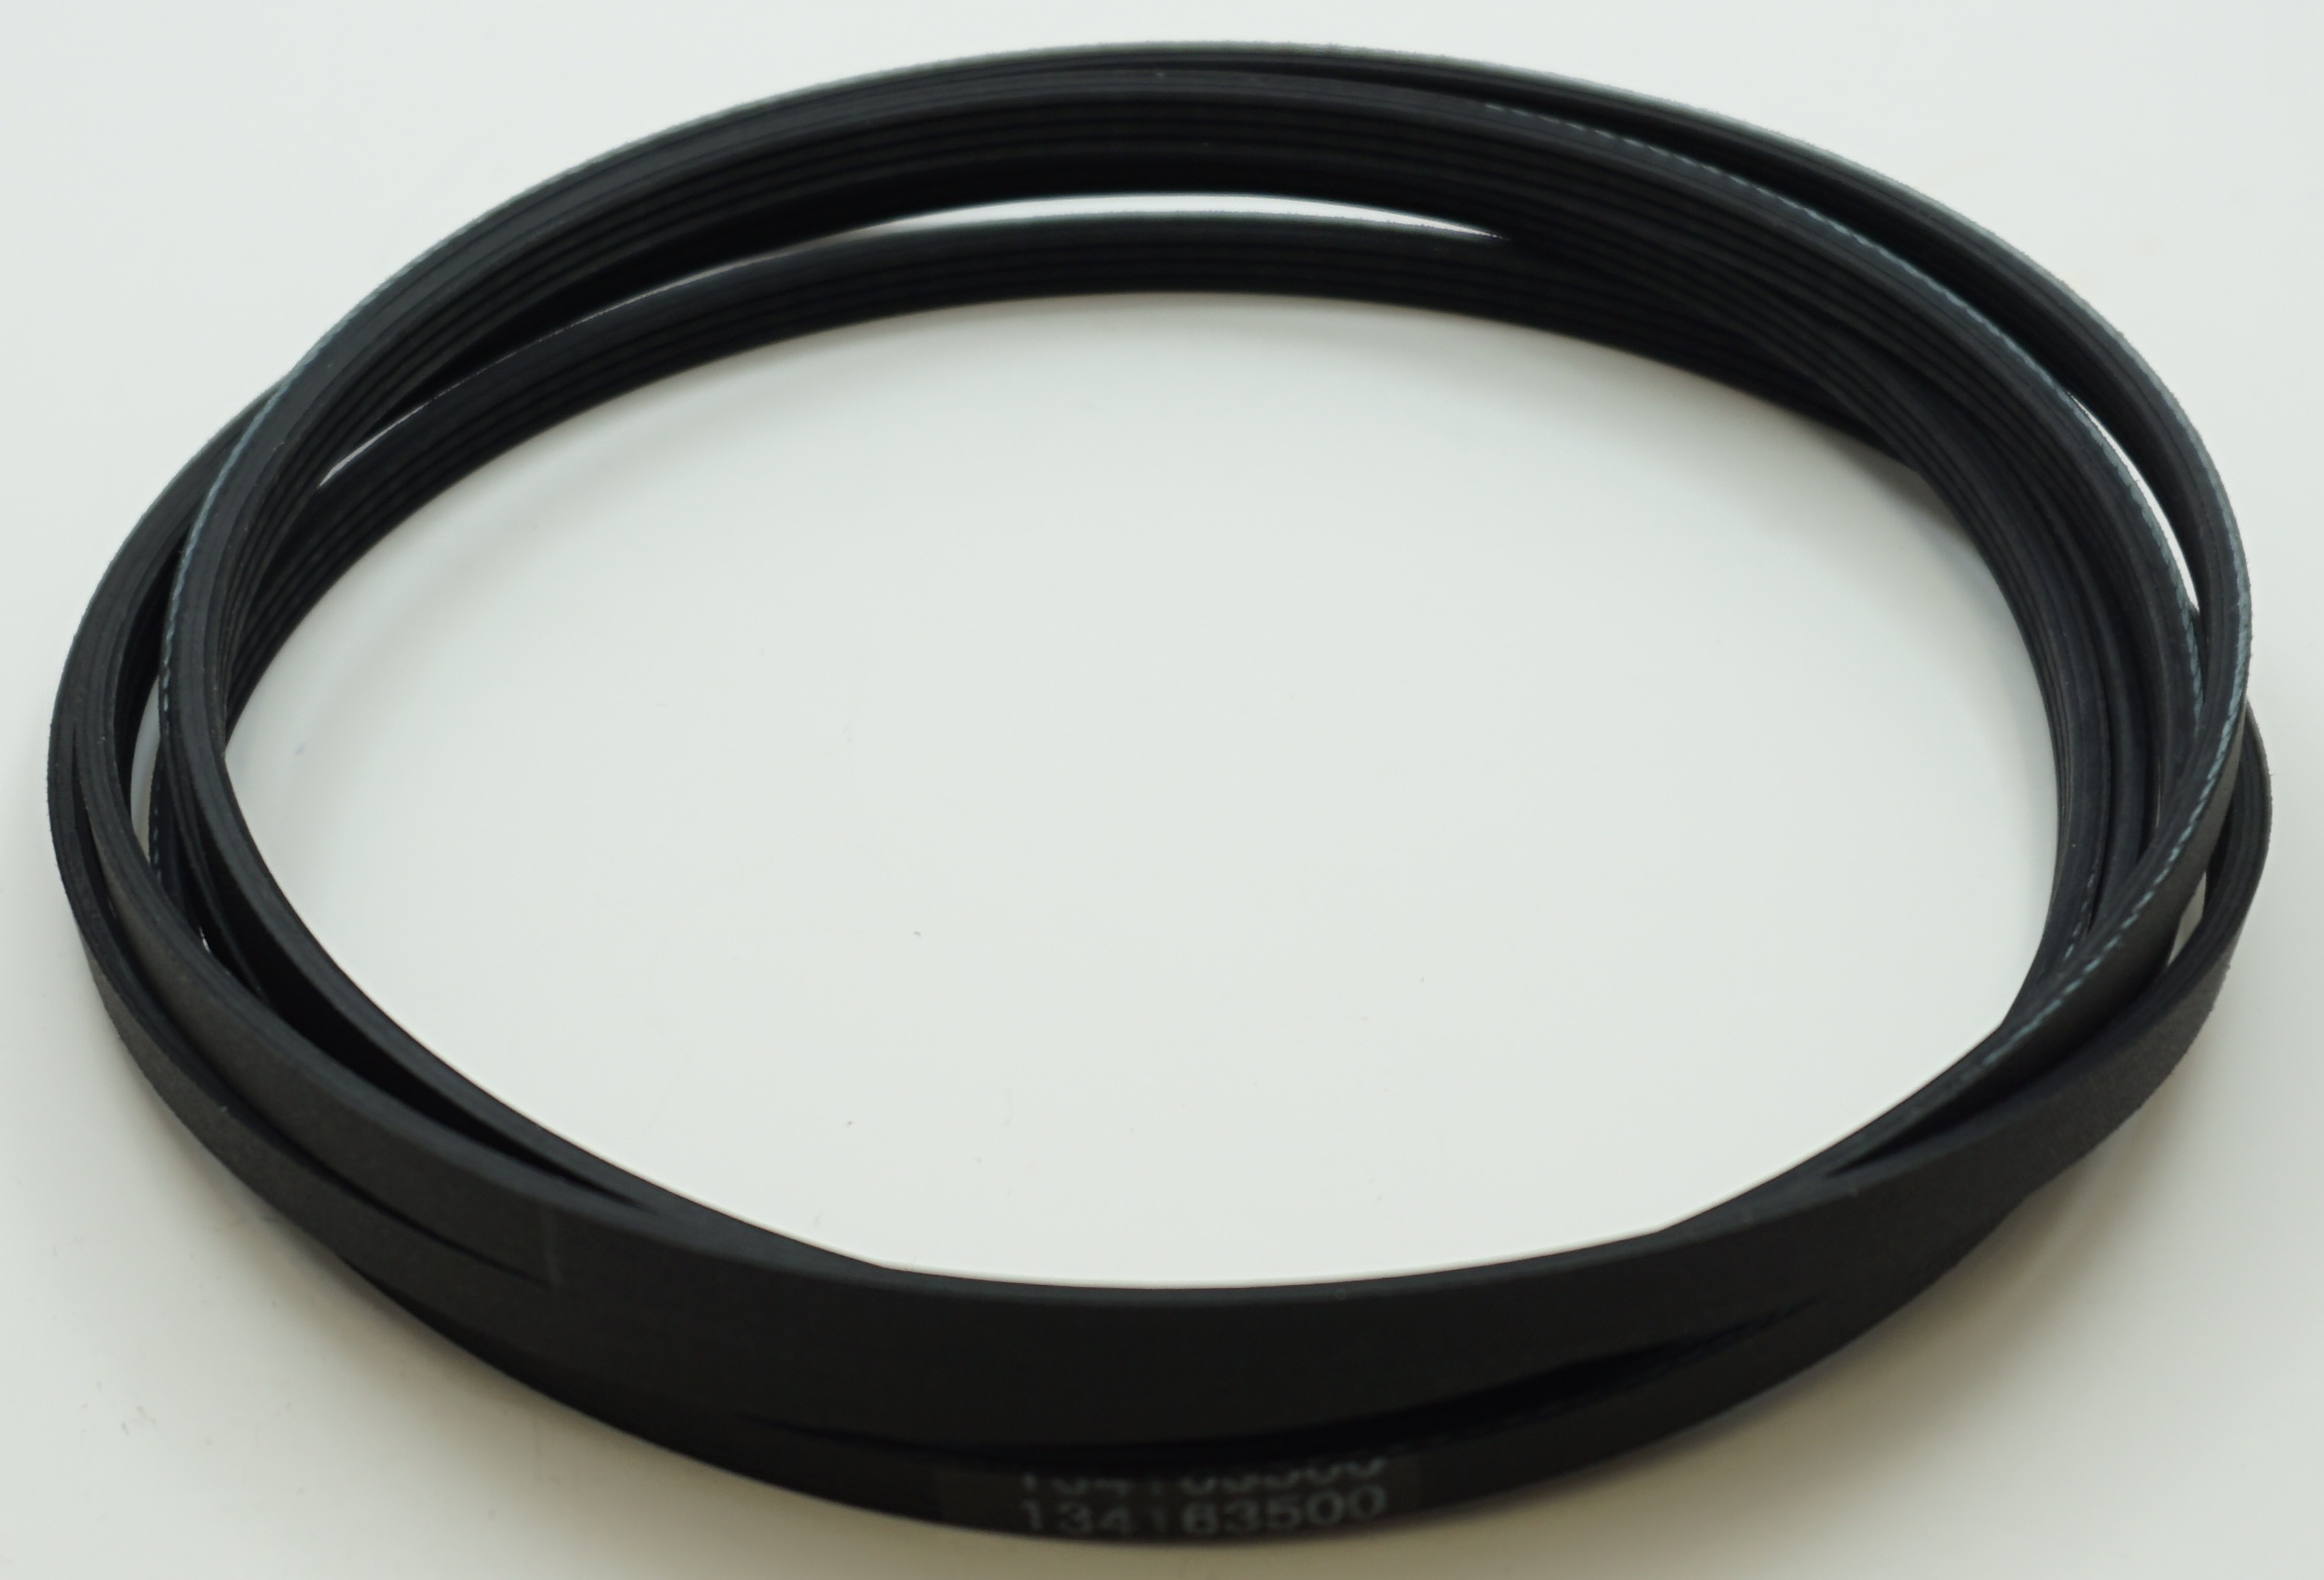 PS1766009 AP4324040 Hotpoint WE12M29 Dryer Belt for General Electric